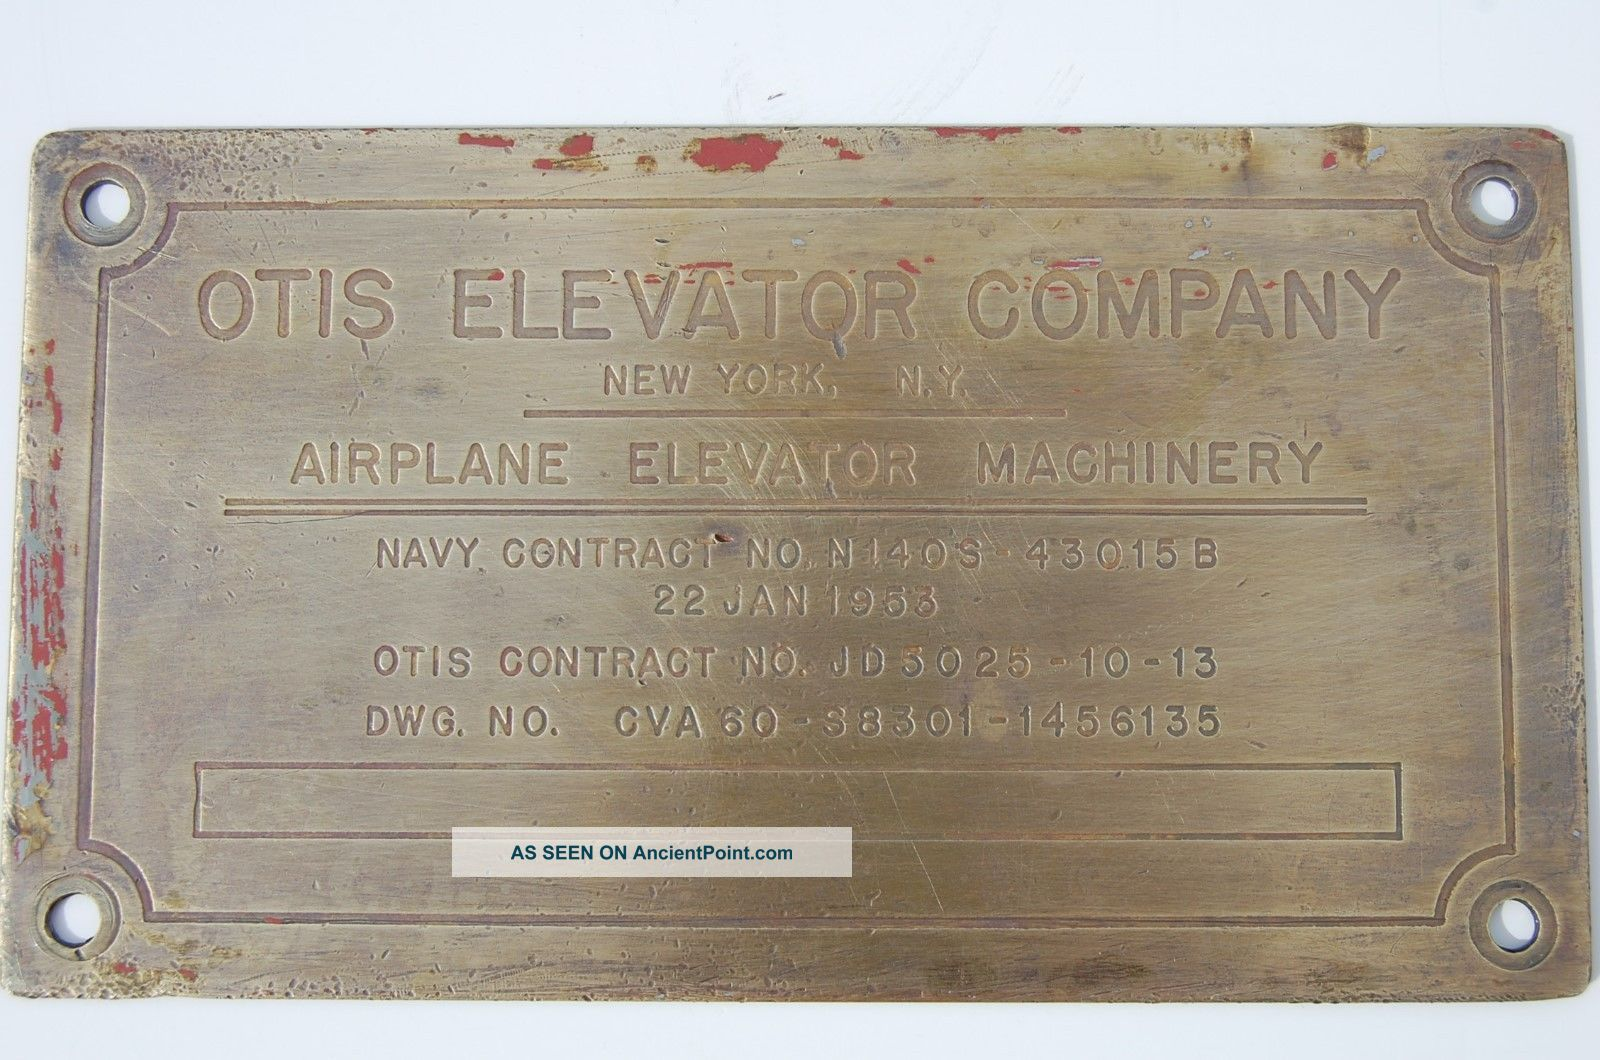 Aircraft Carrier Plaque Airplane Elevator Machinery Otis Navy 1953 No Reserv Plaques & Signs photo